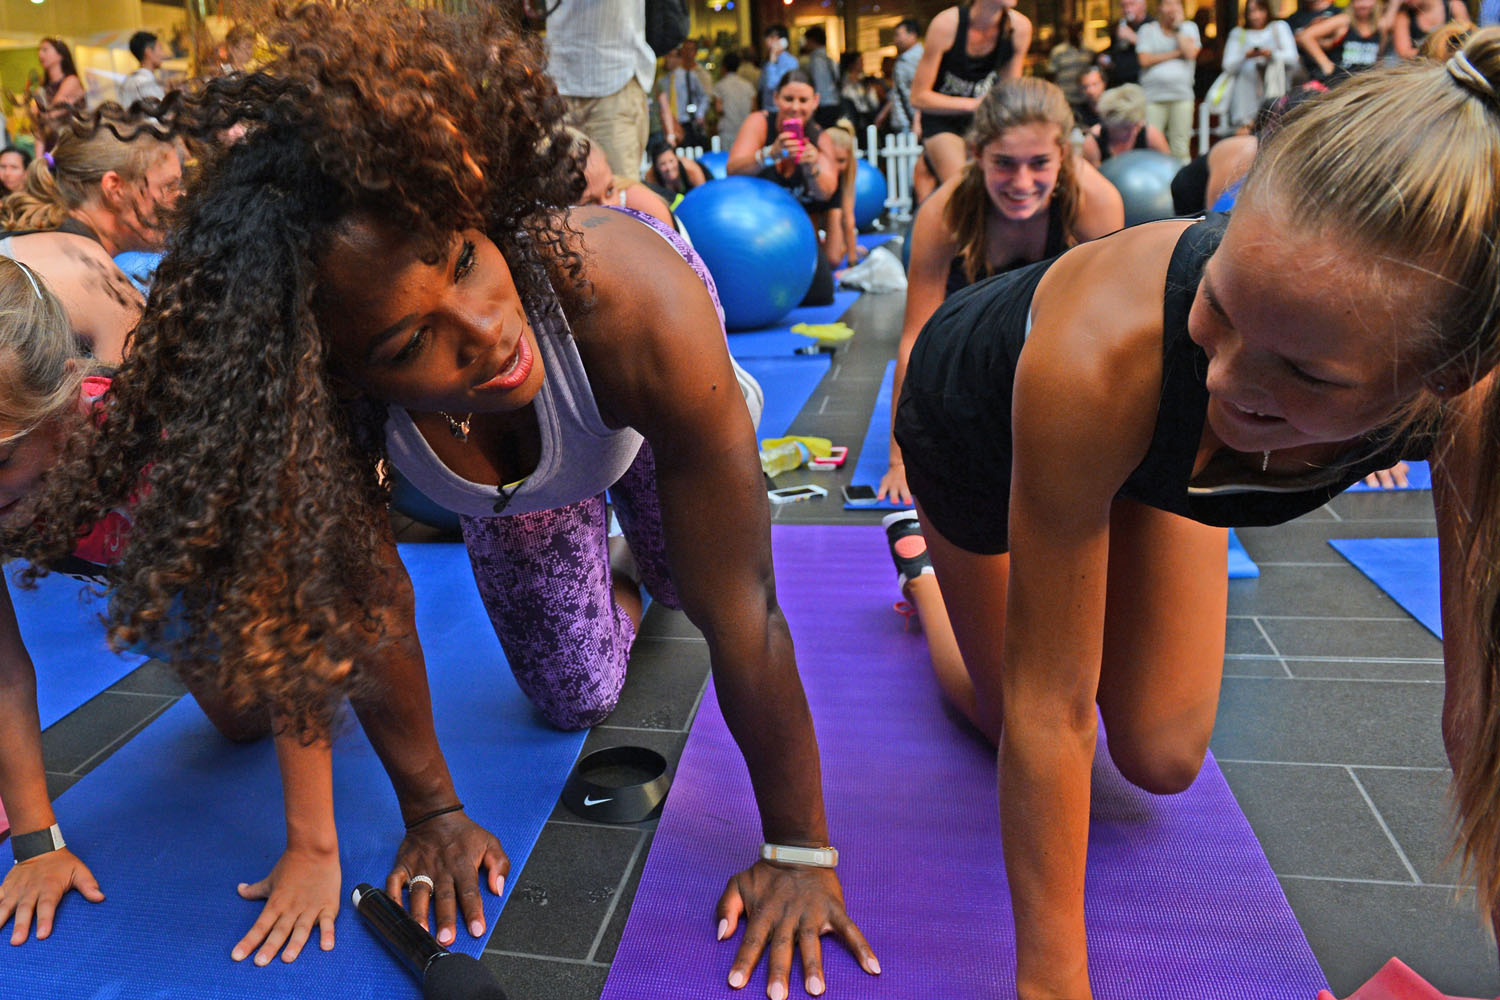 Serena Williams joins tennis fans at a sponsor's workout training club in Melbourne on January 8, 2013.